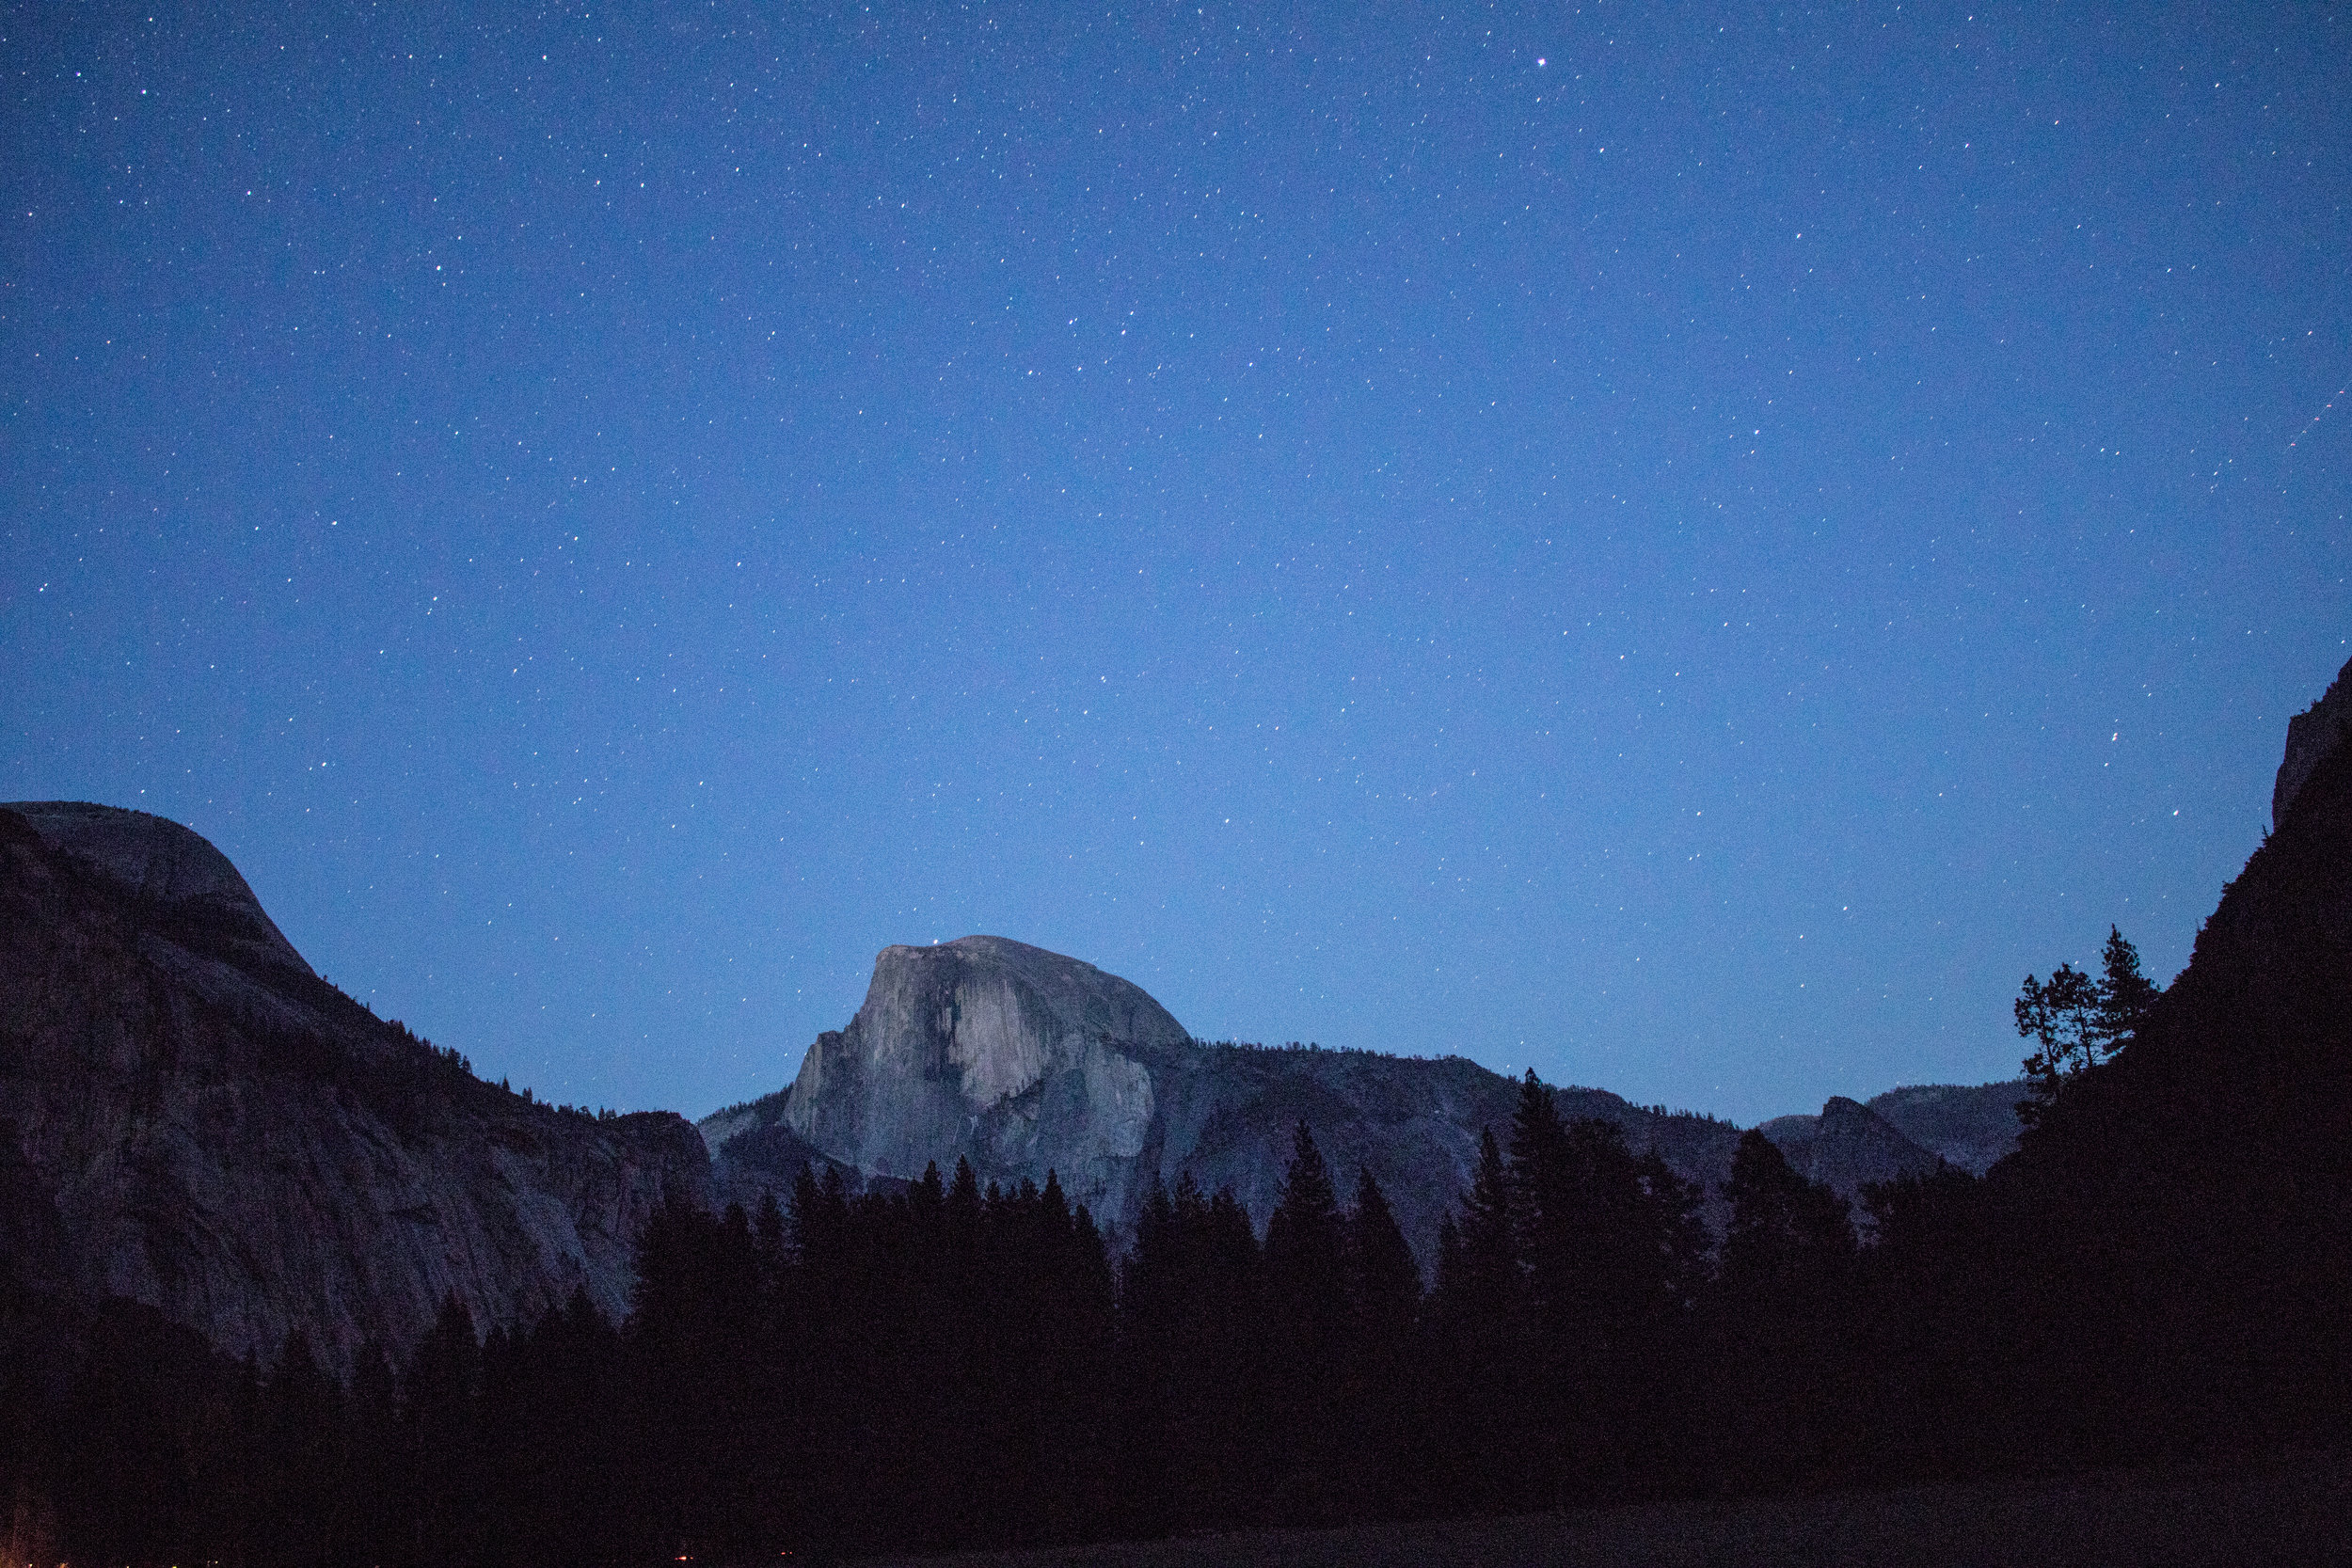 Half Dome Starry Sky from the Meadow - Yosemite